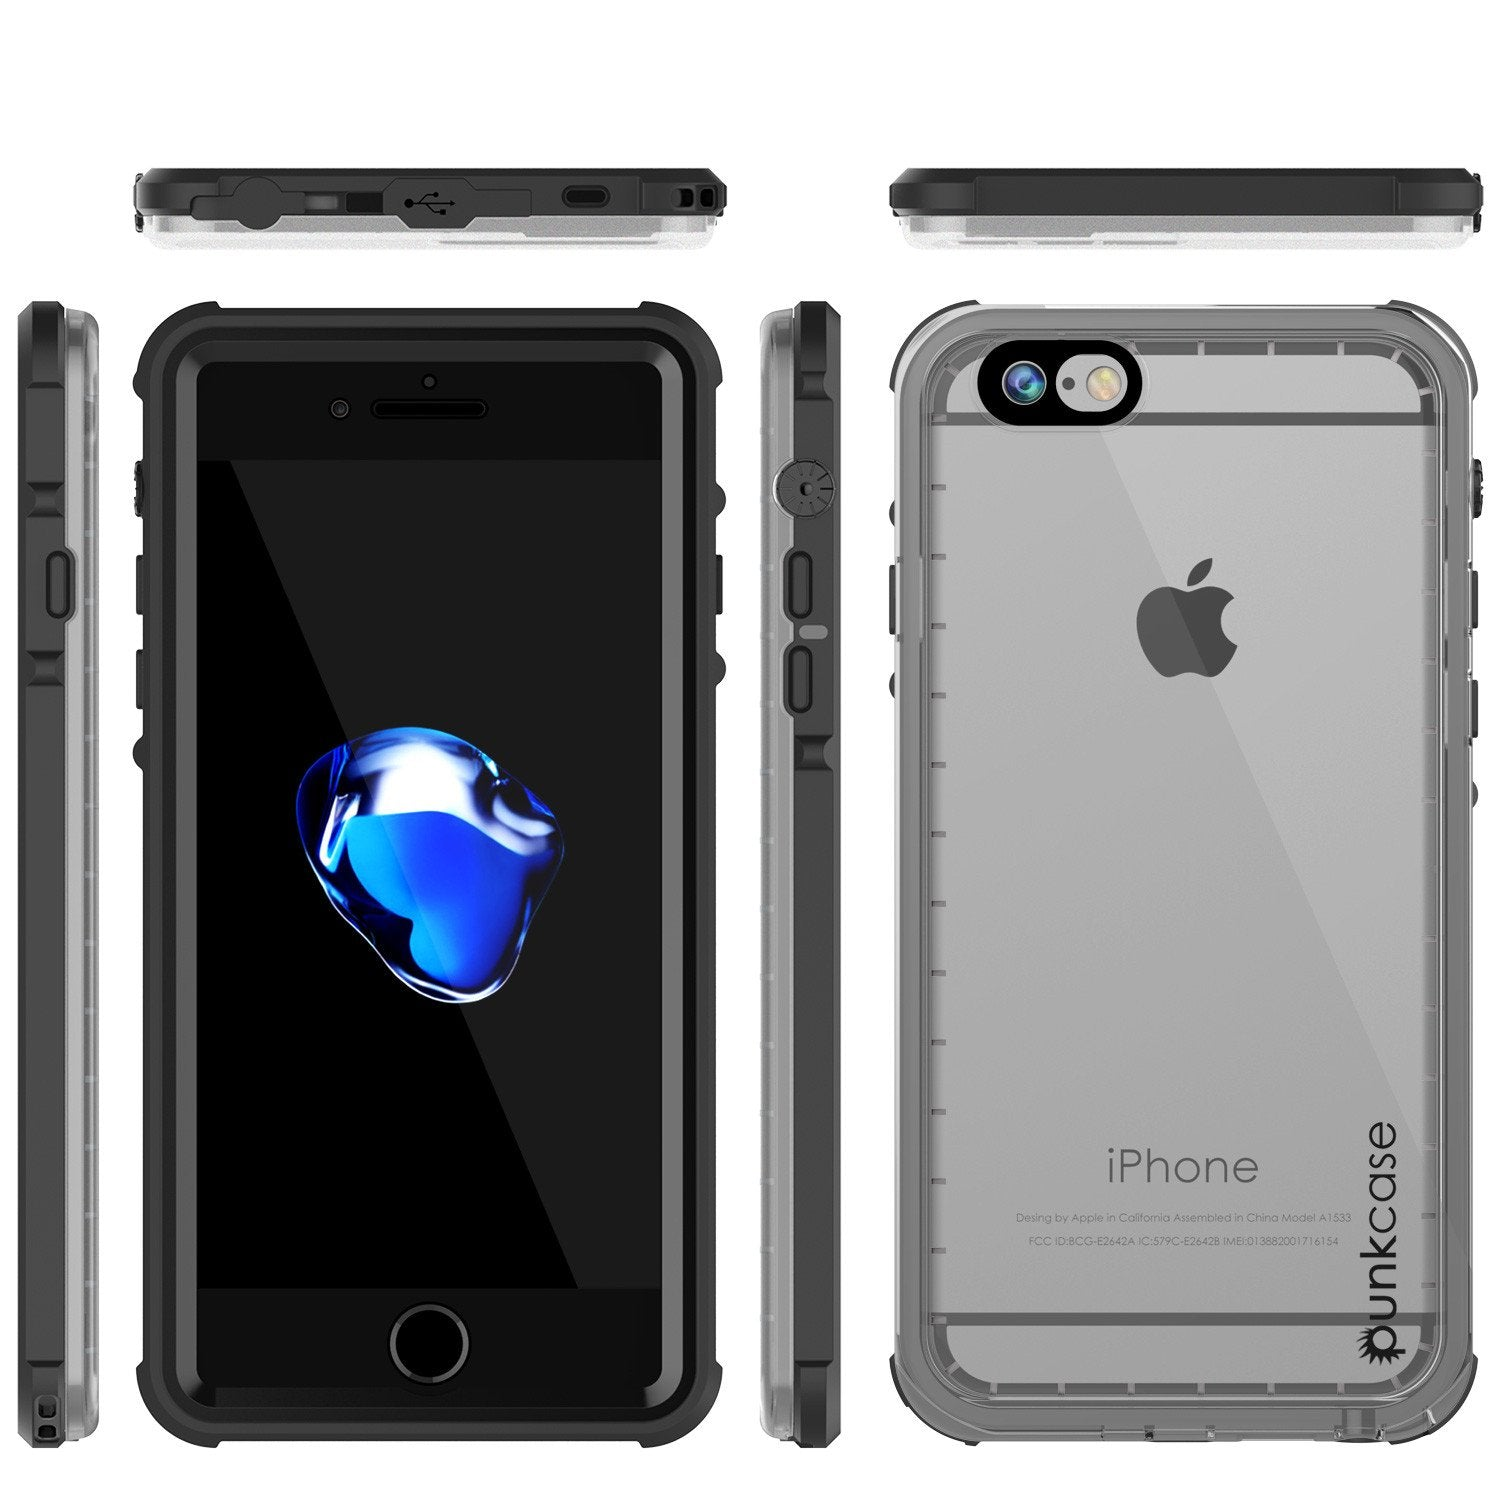 Apple iPhone 7 Waterproof Case, PUNKcase CRYSTAL Black W/ Attached Screen Protector  | Warranty - PunkCase NZ